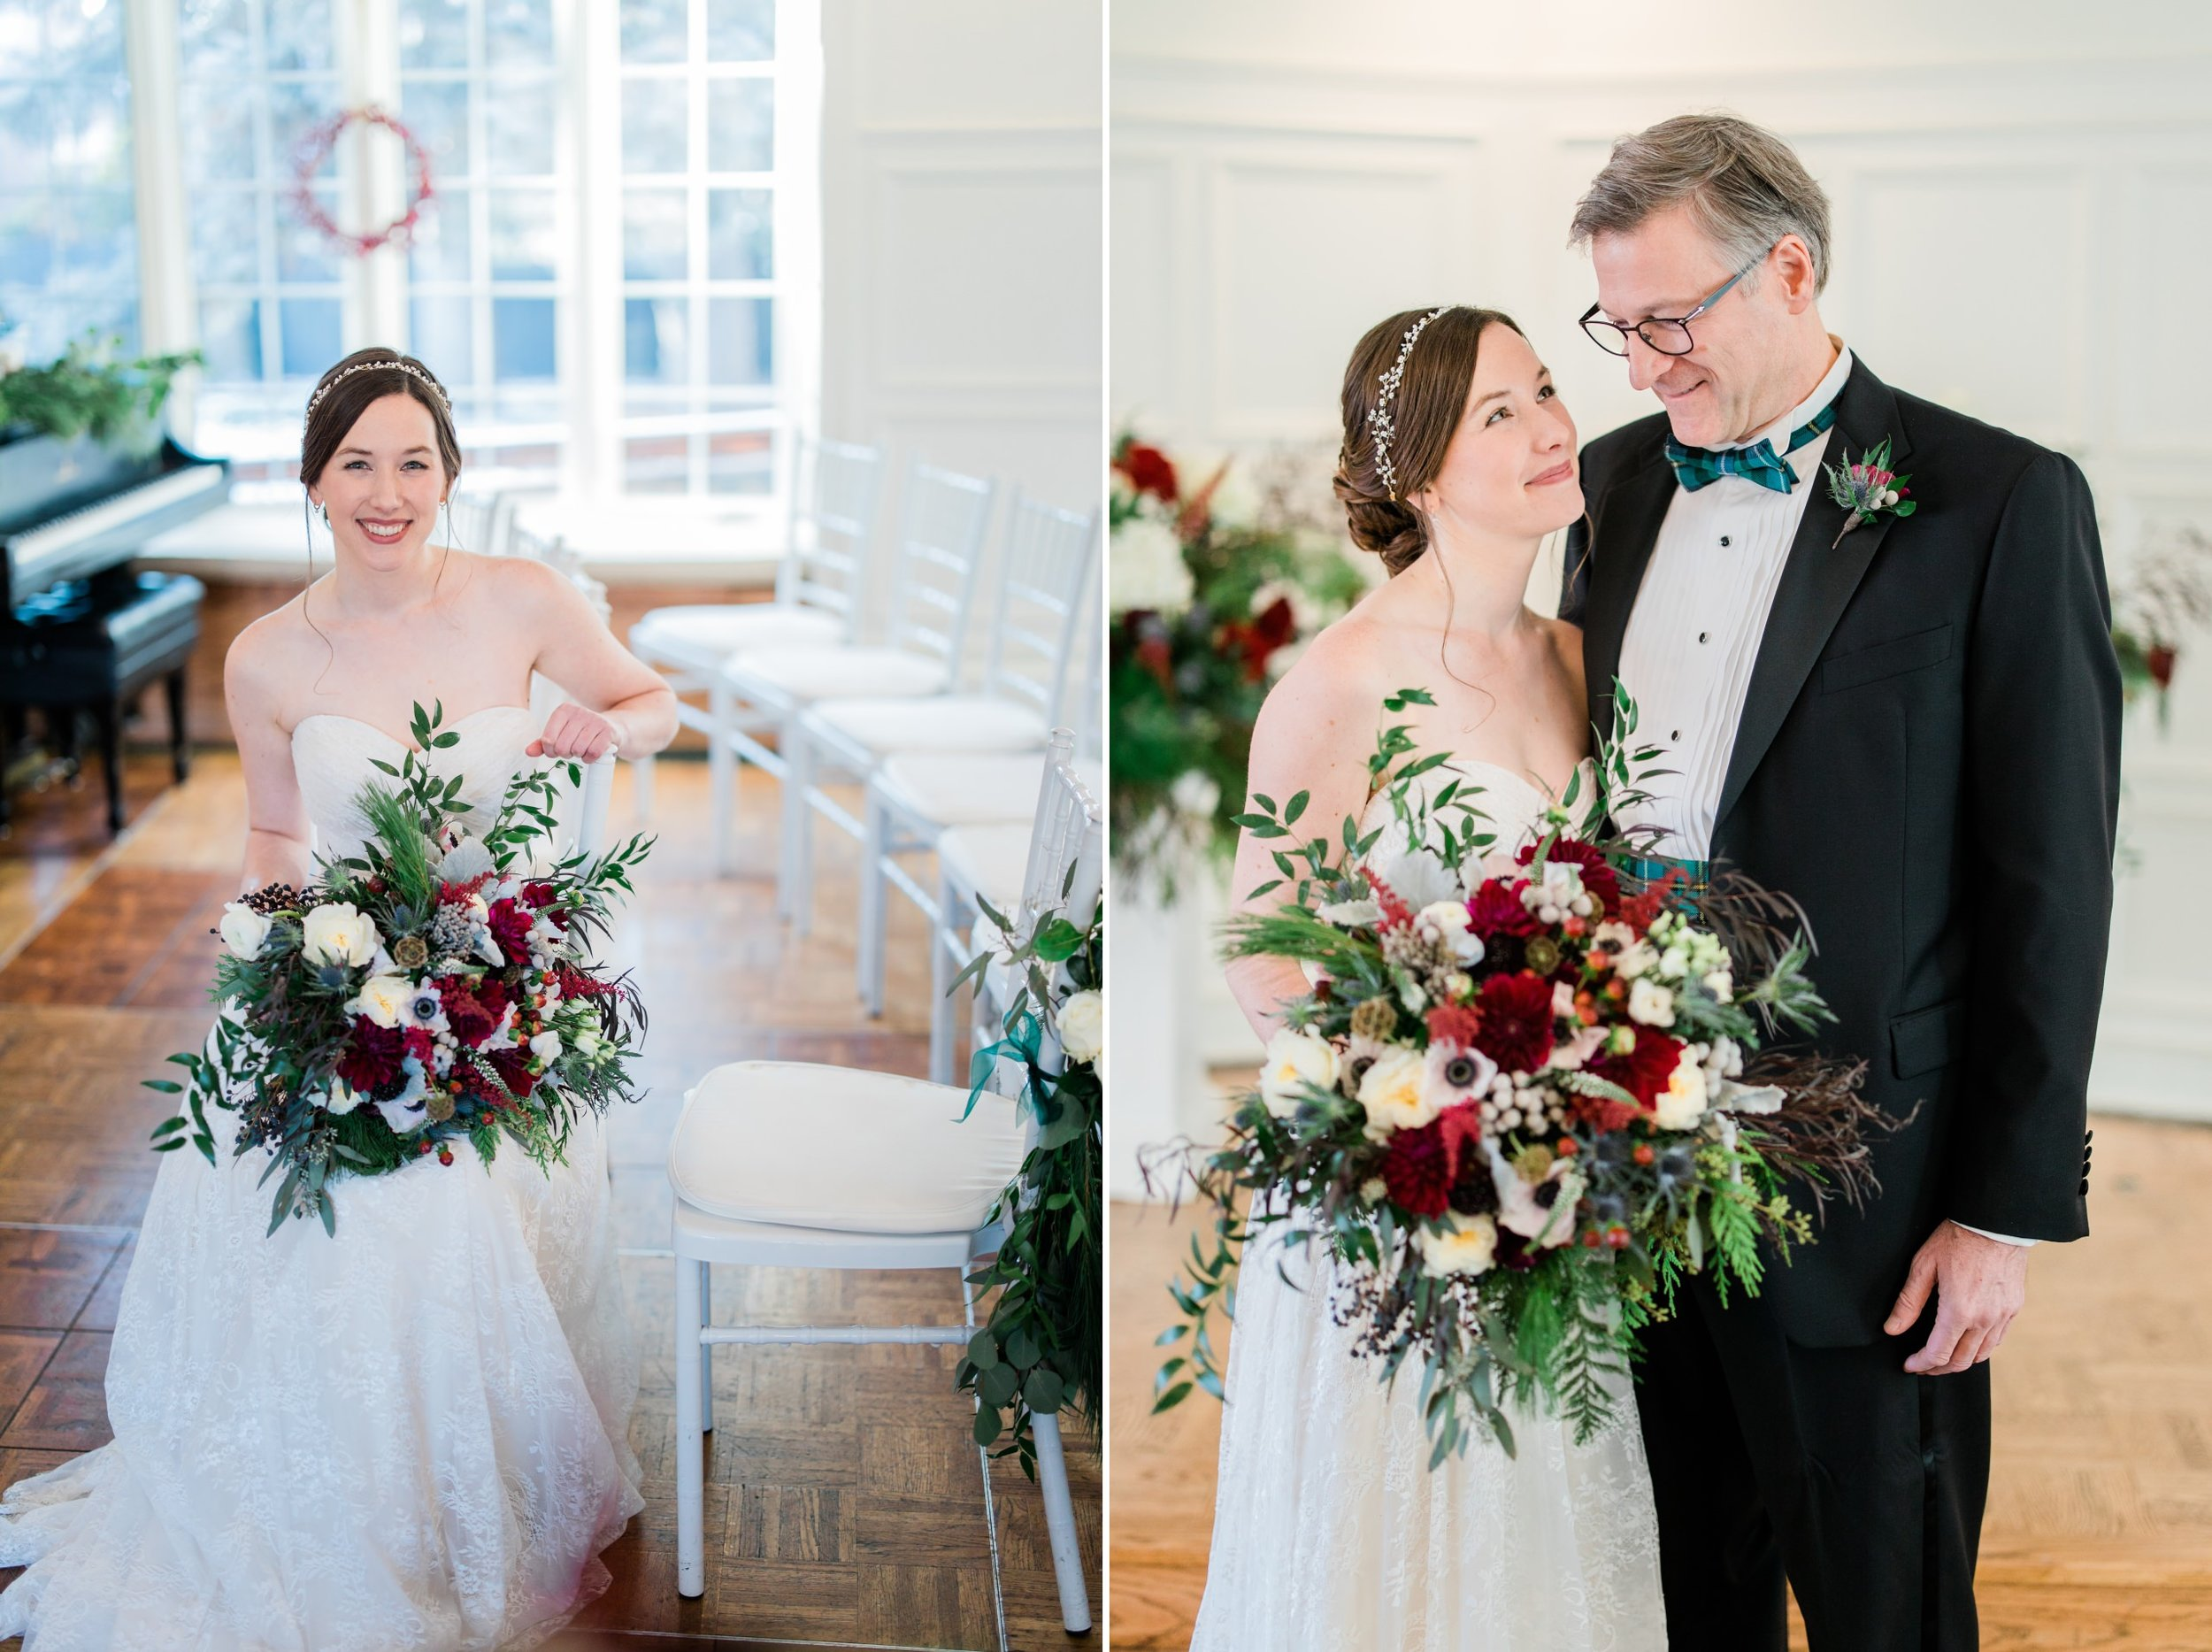 Scottish Winter Wedding at the Saint Paul College Club